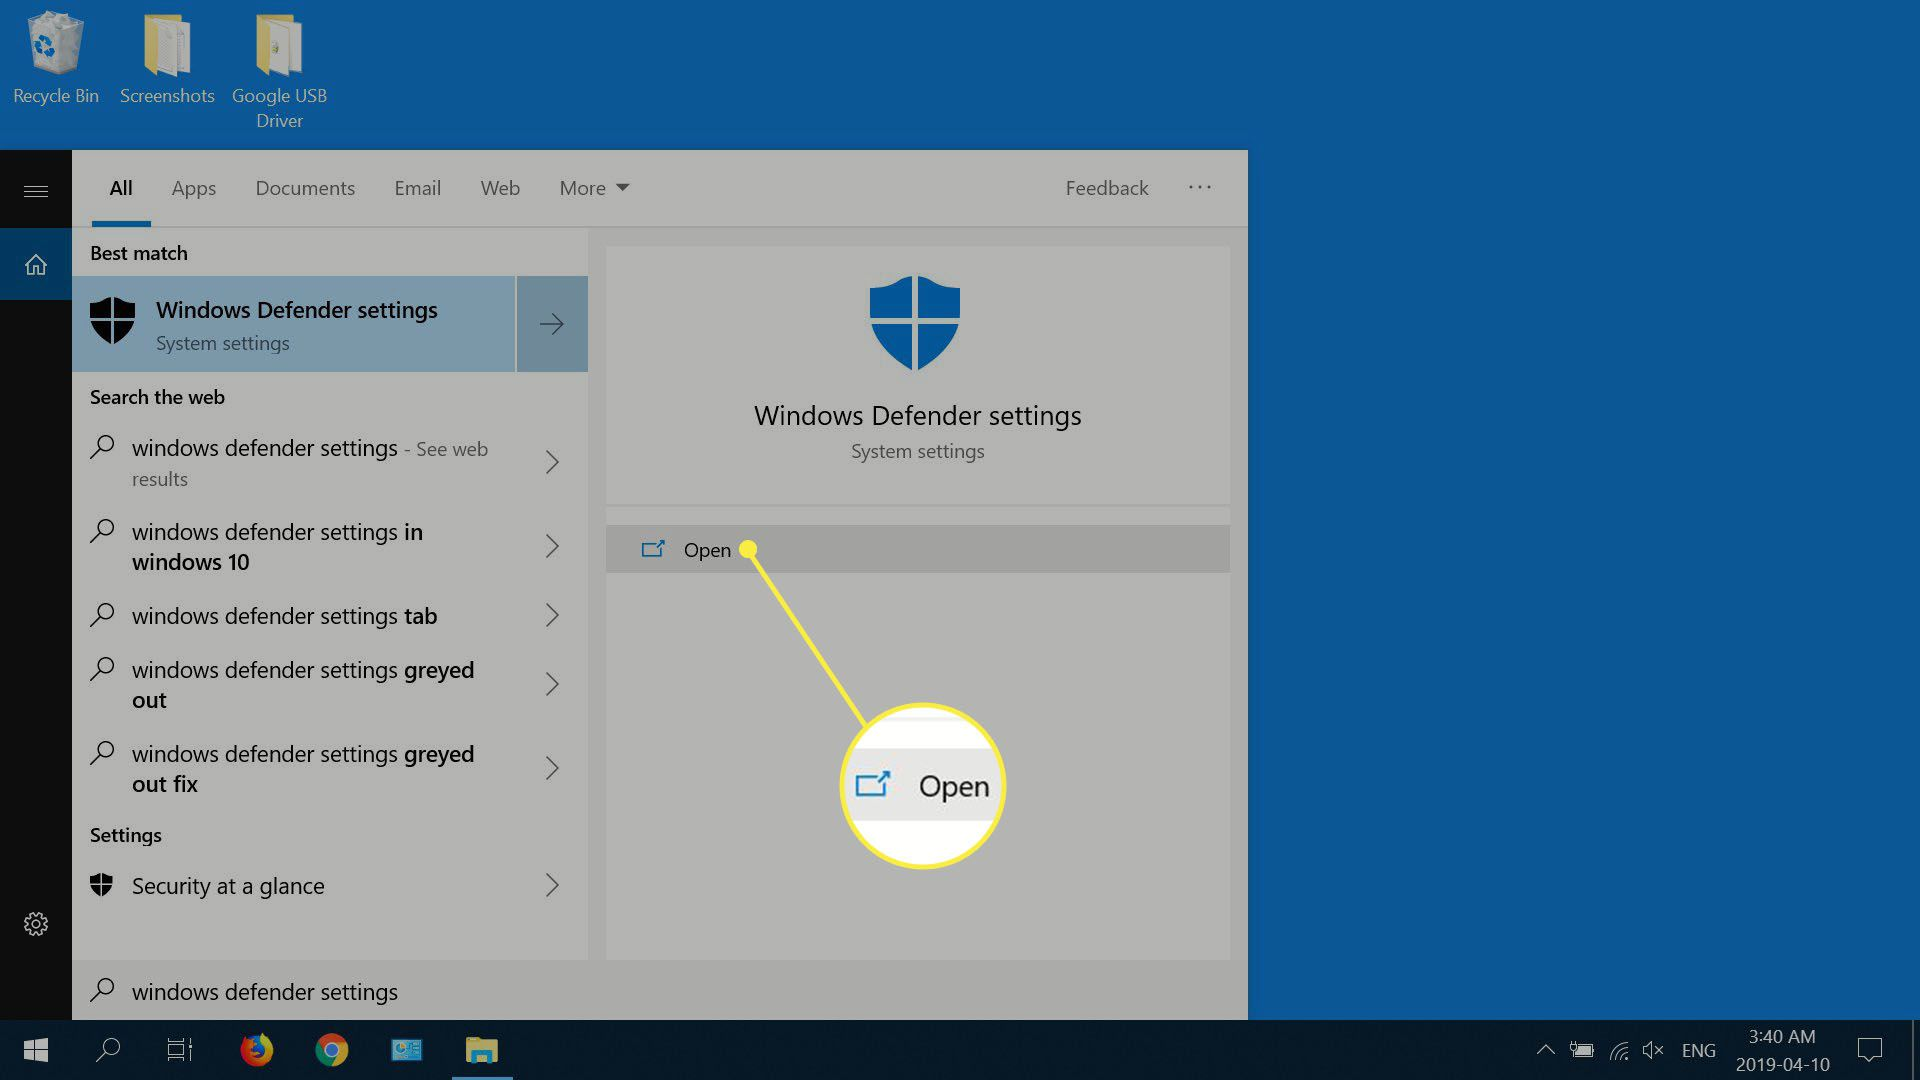 Type windows defender settings into Windows search and select Open once the results populate.